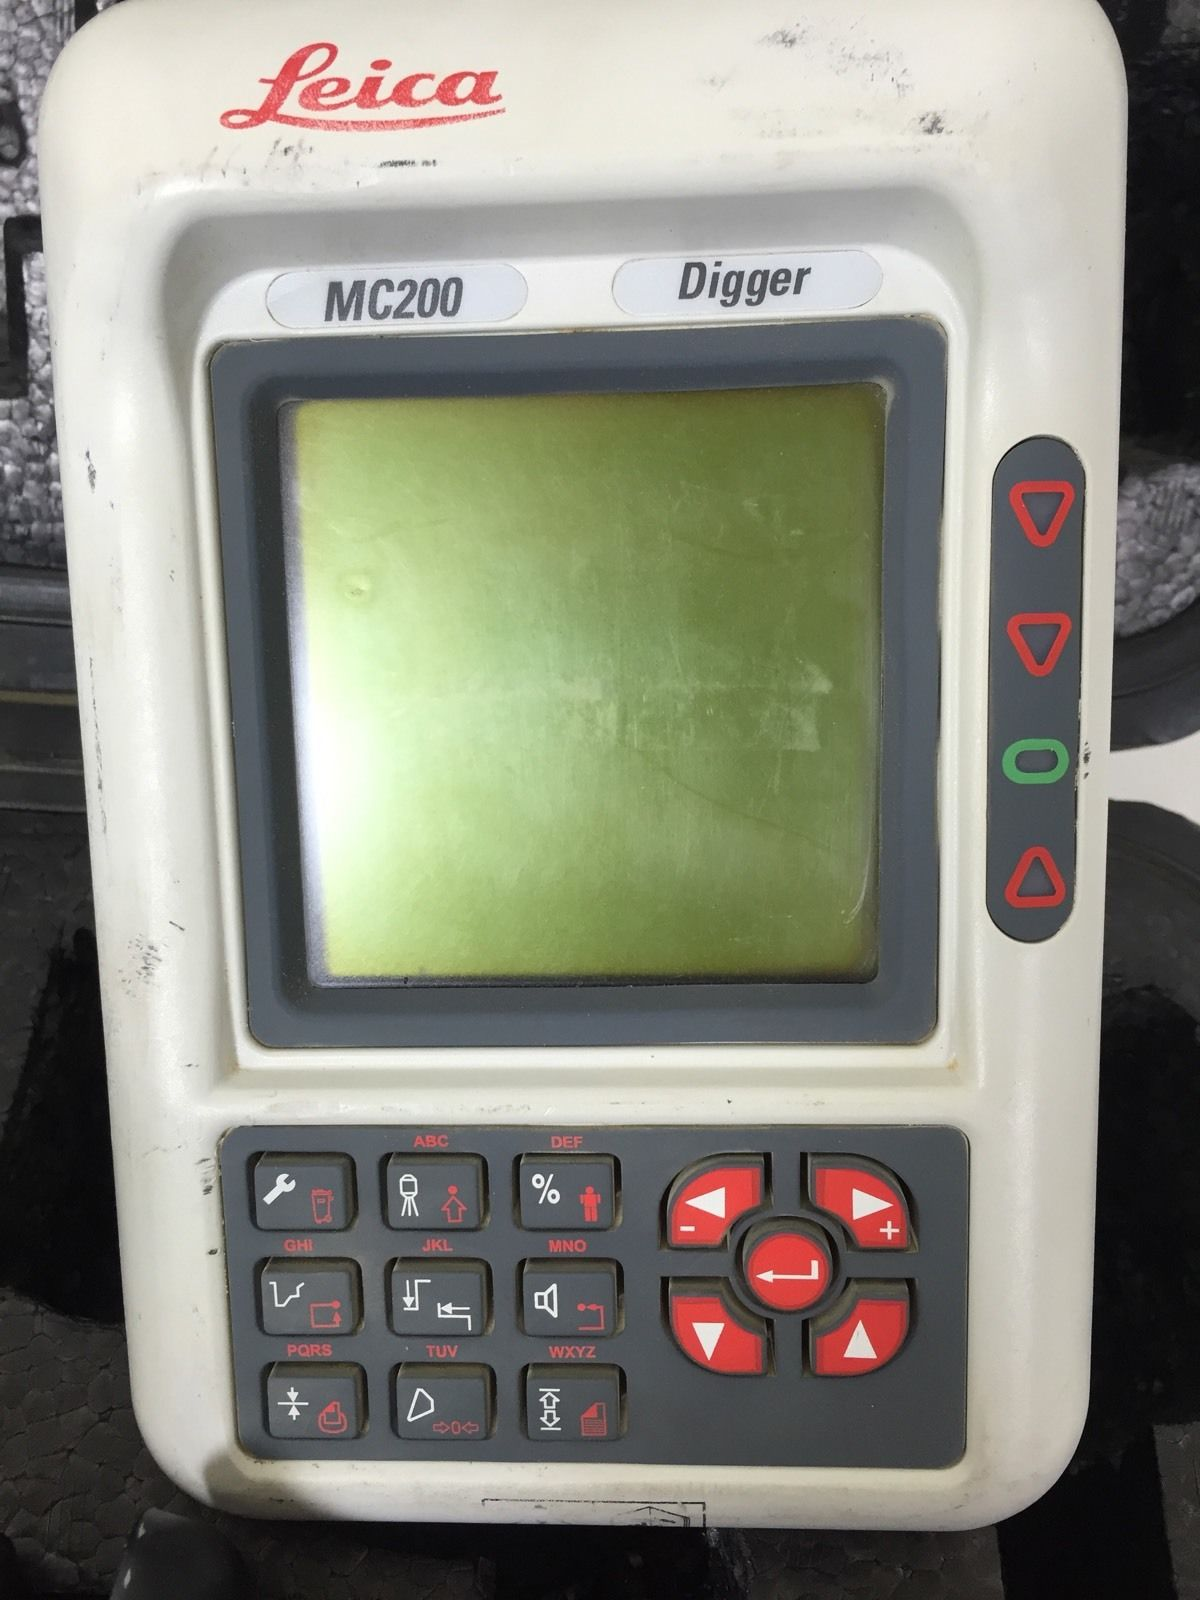 Leica Mc200 Mcp201 Digger Machine Control System